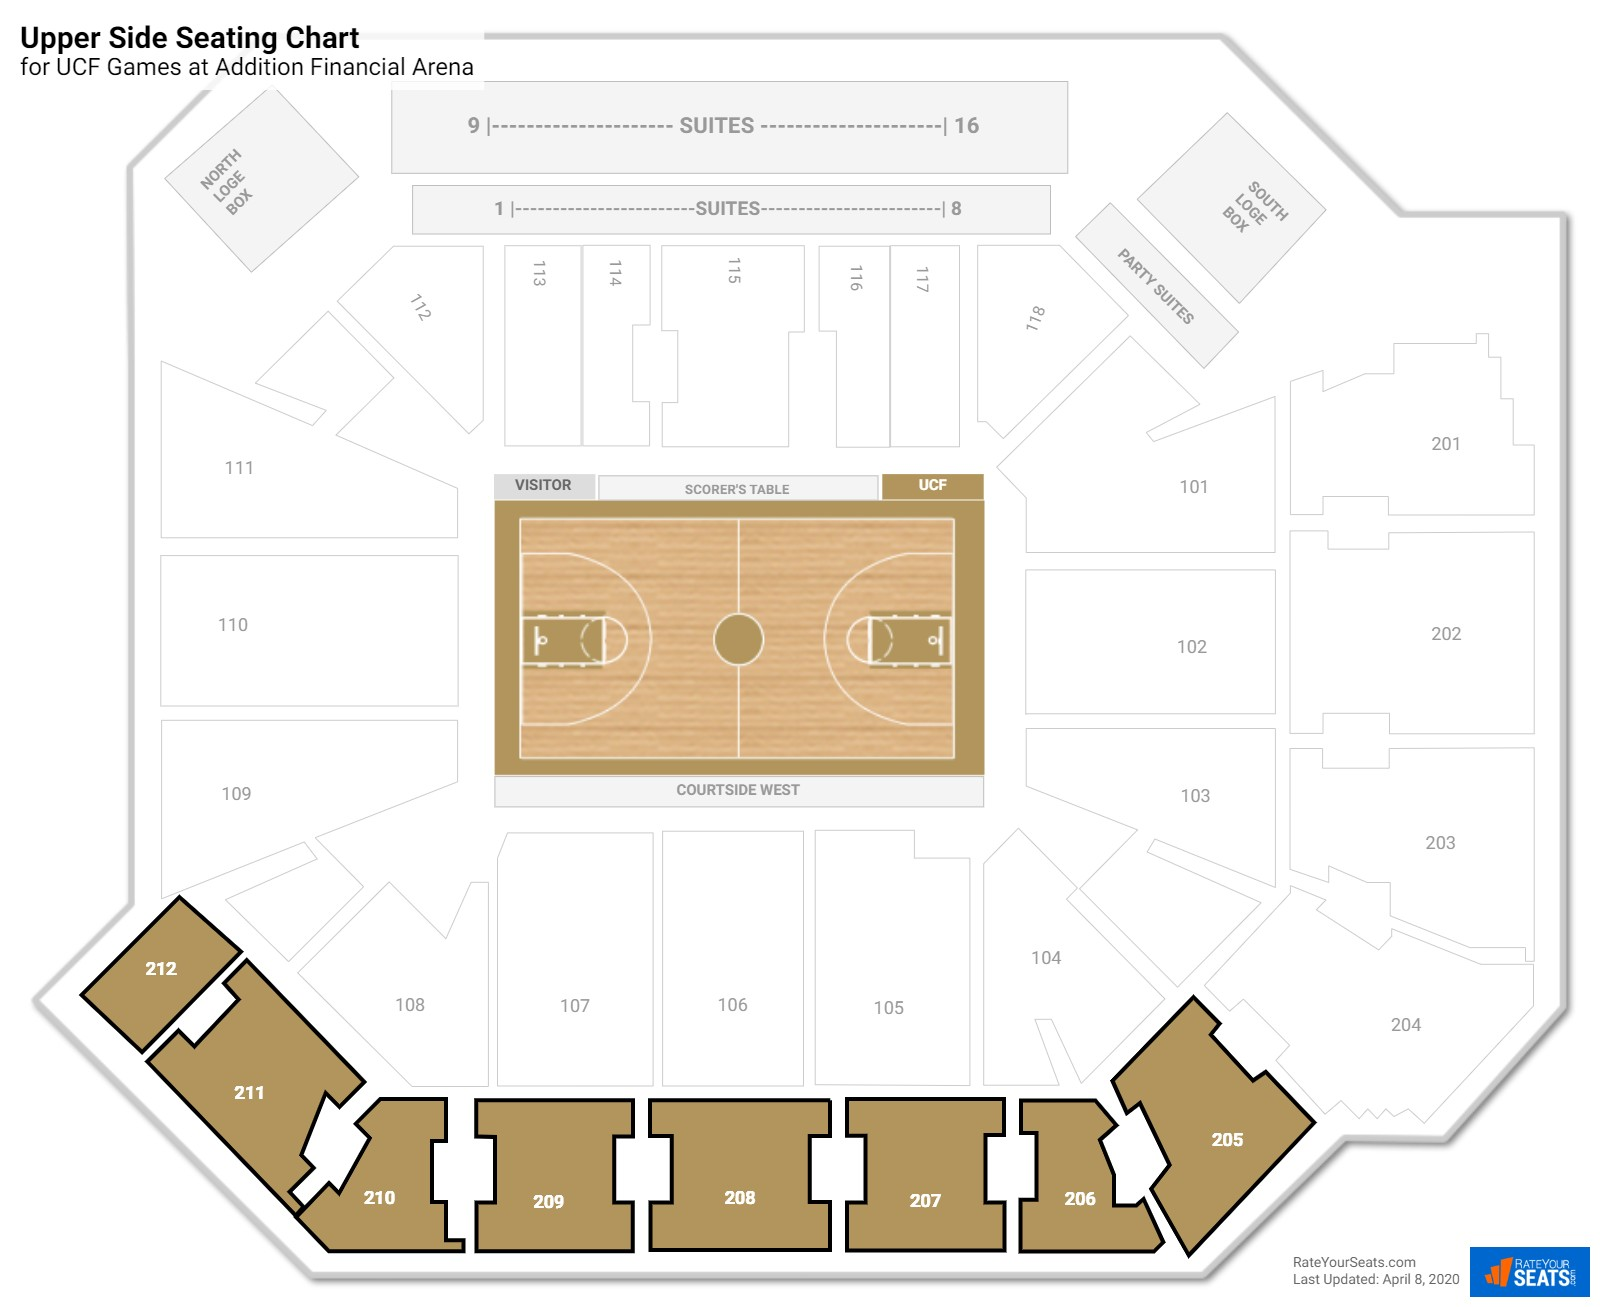 CFE Arena Upper Side seating chart